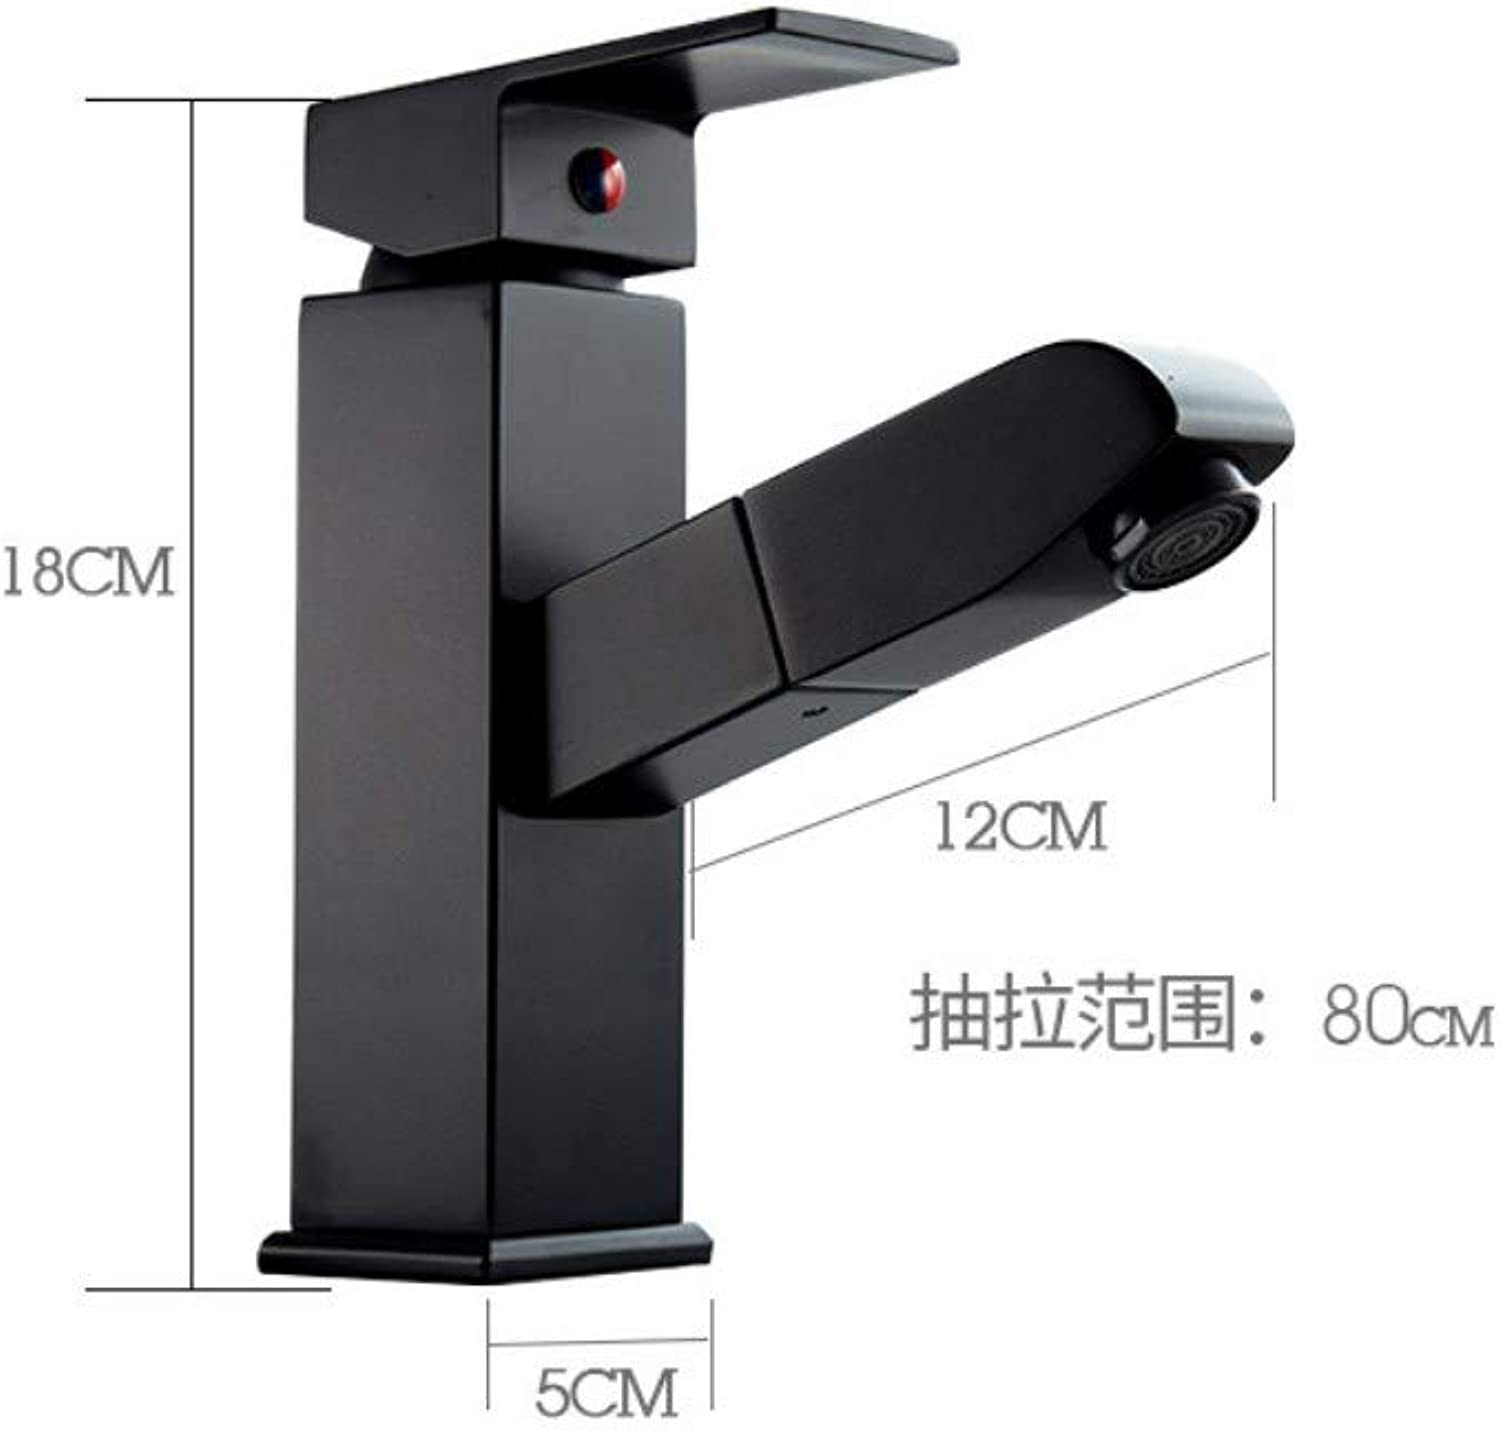 All Copper Plating Pull Telescopic Faucet Hot and Cold Water Mixing Basin Basin Bathroom Faucet, Black 1